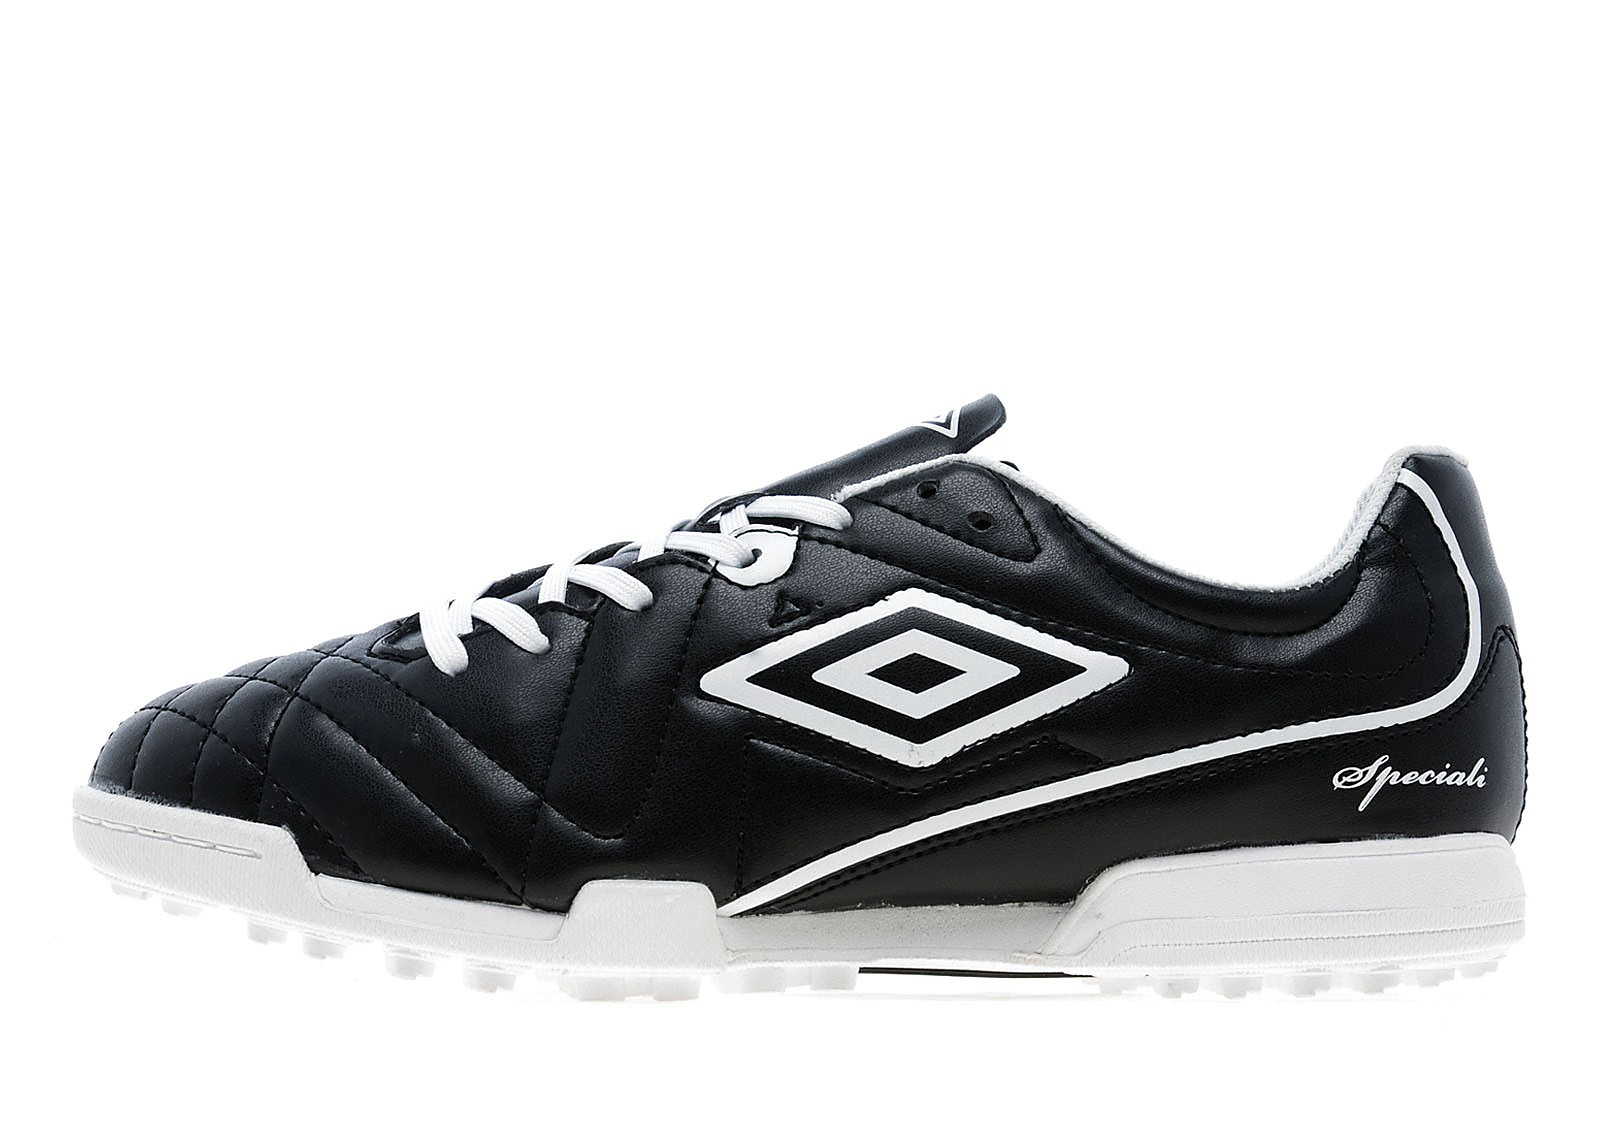 Mens Umbro Speciali Club 4 AG Black/White